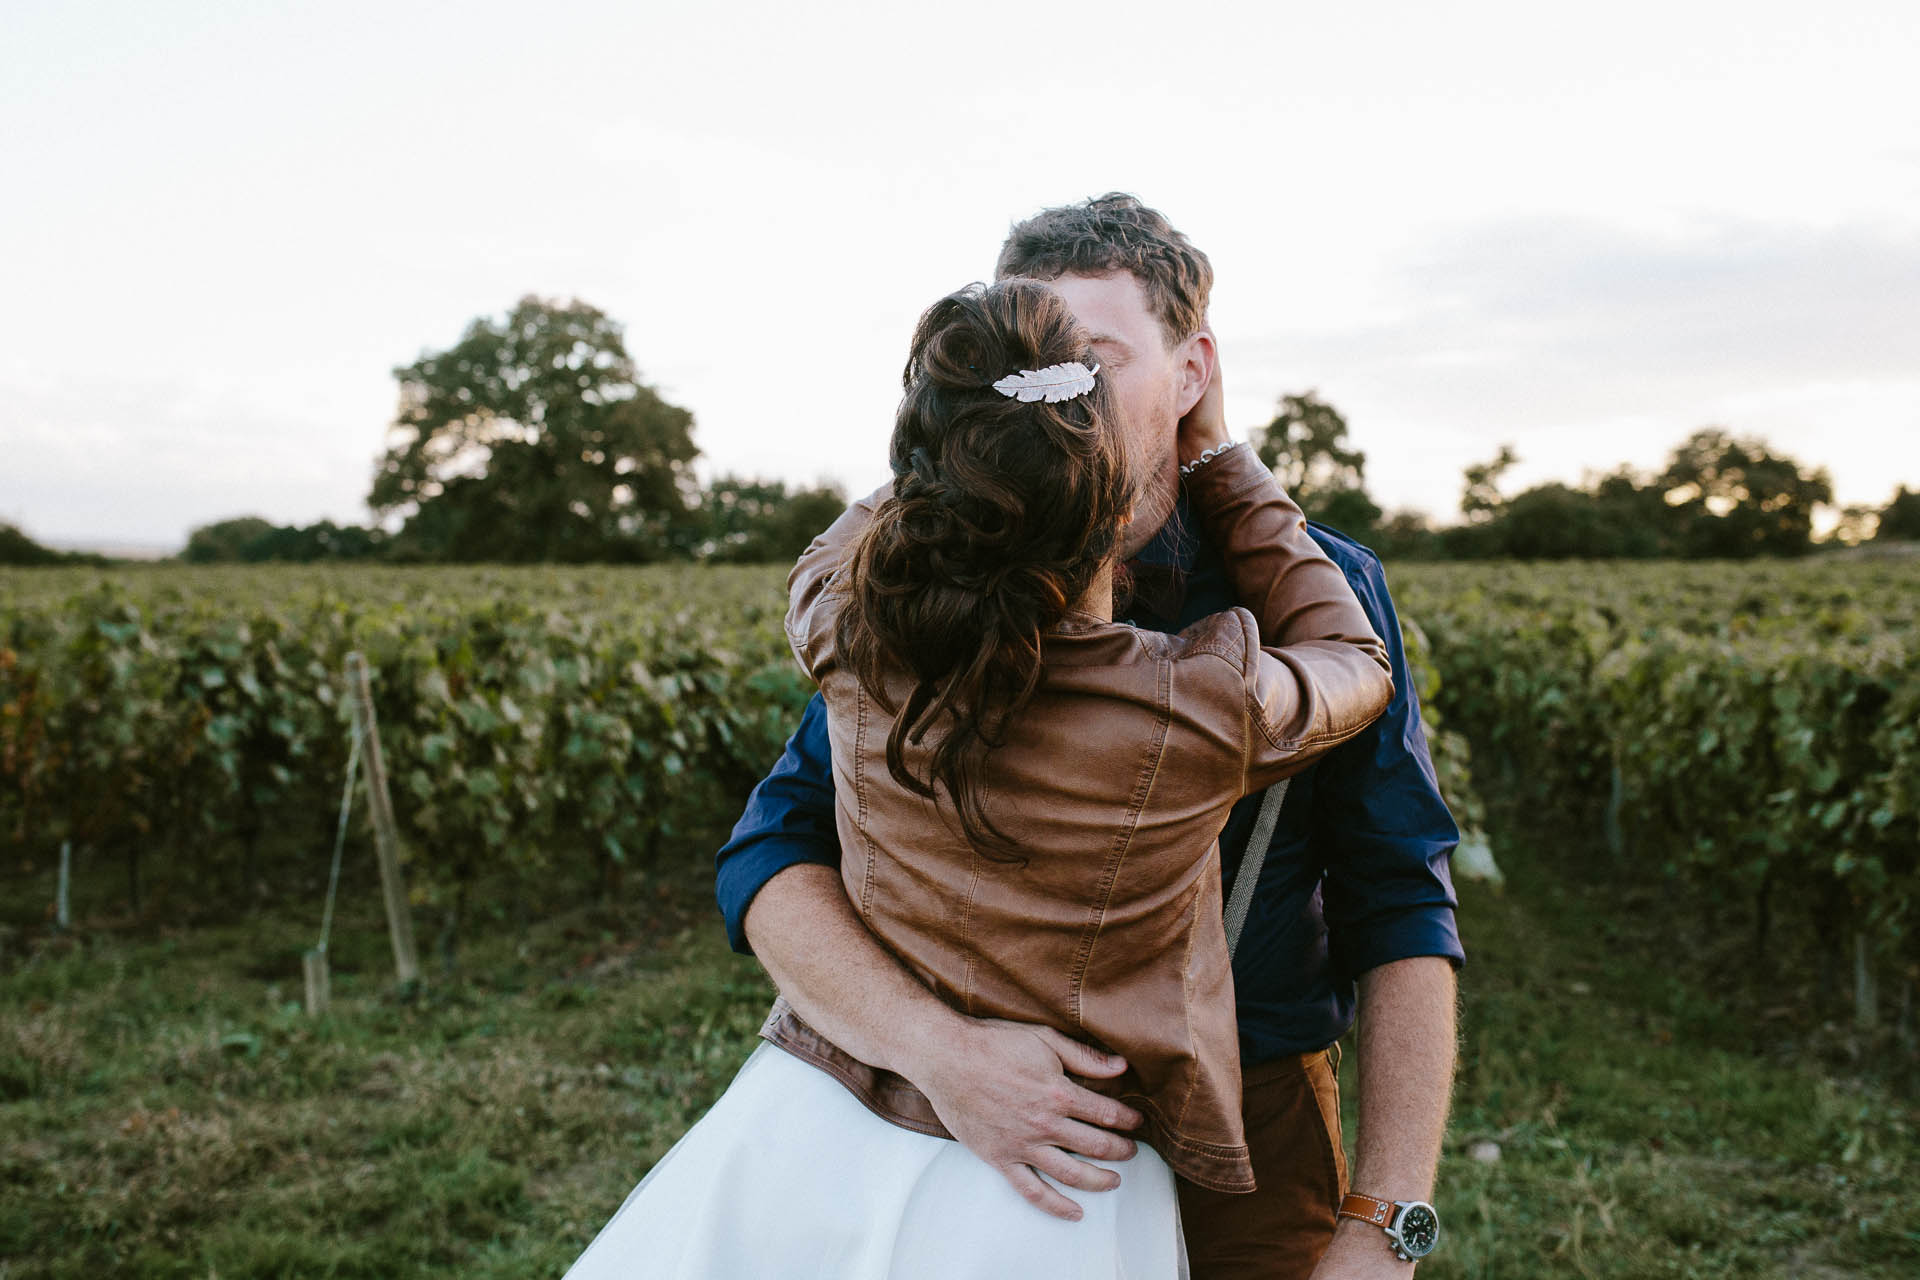 french_wedding_vineyard_flavie_nelly_photography